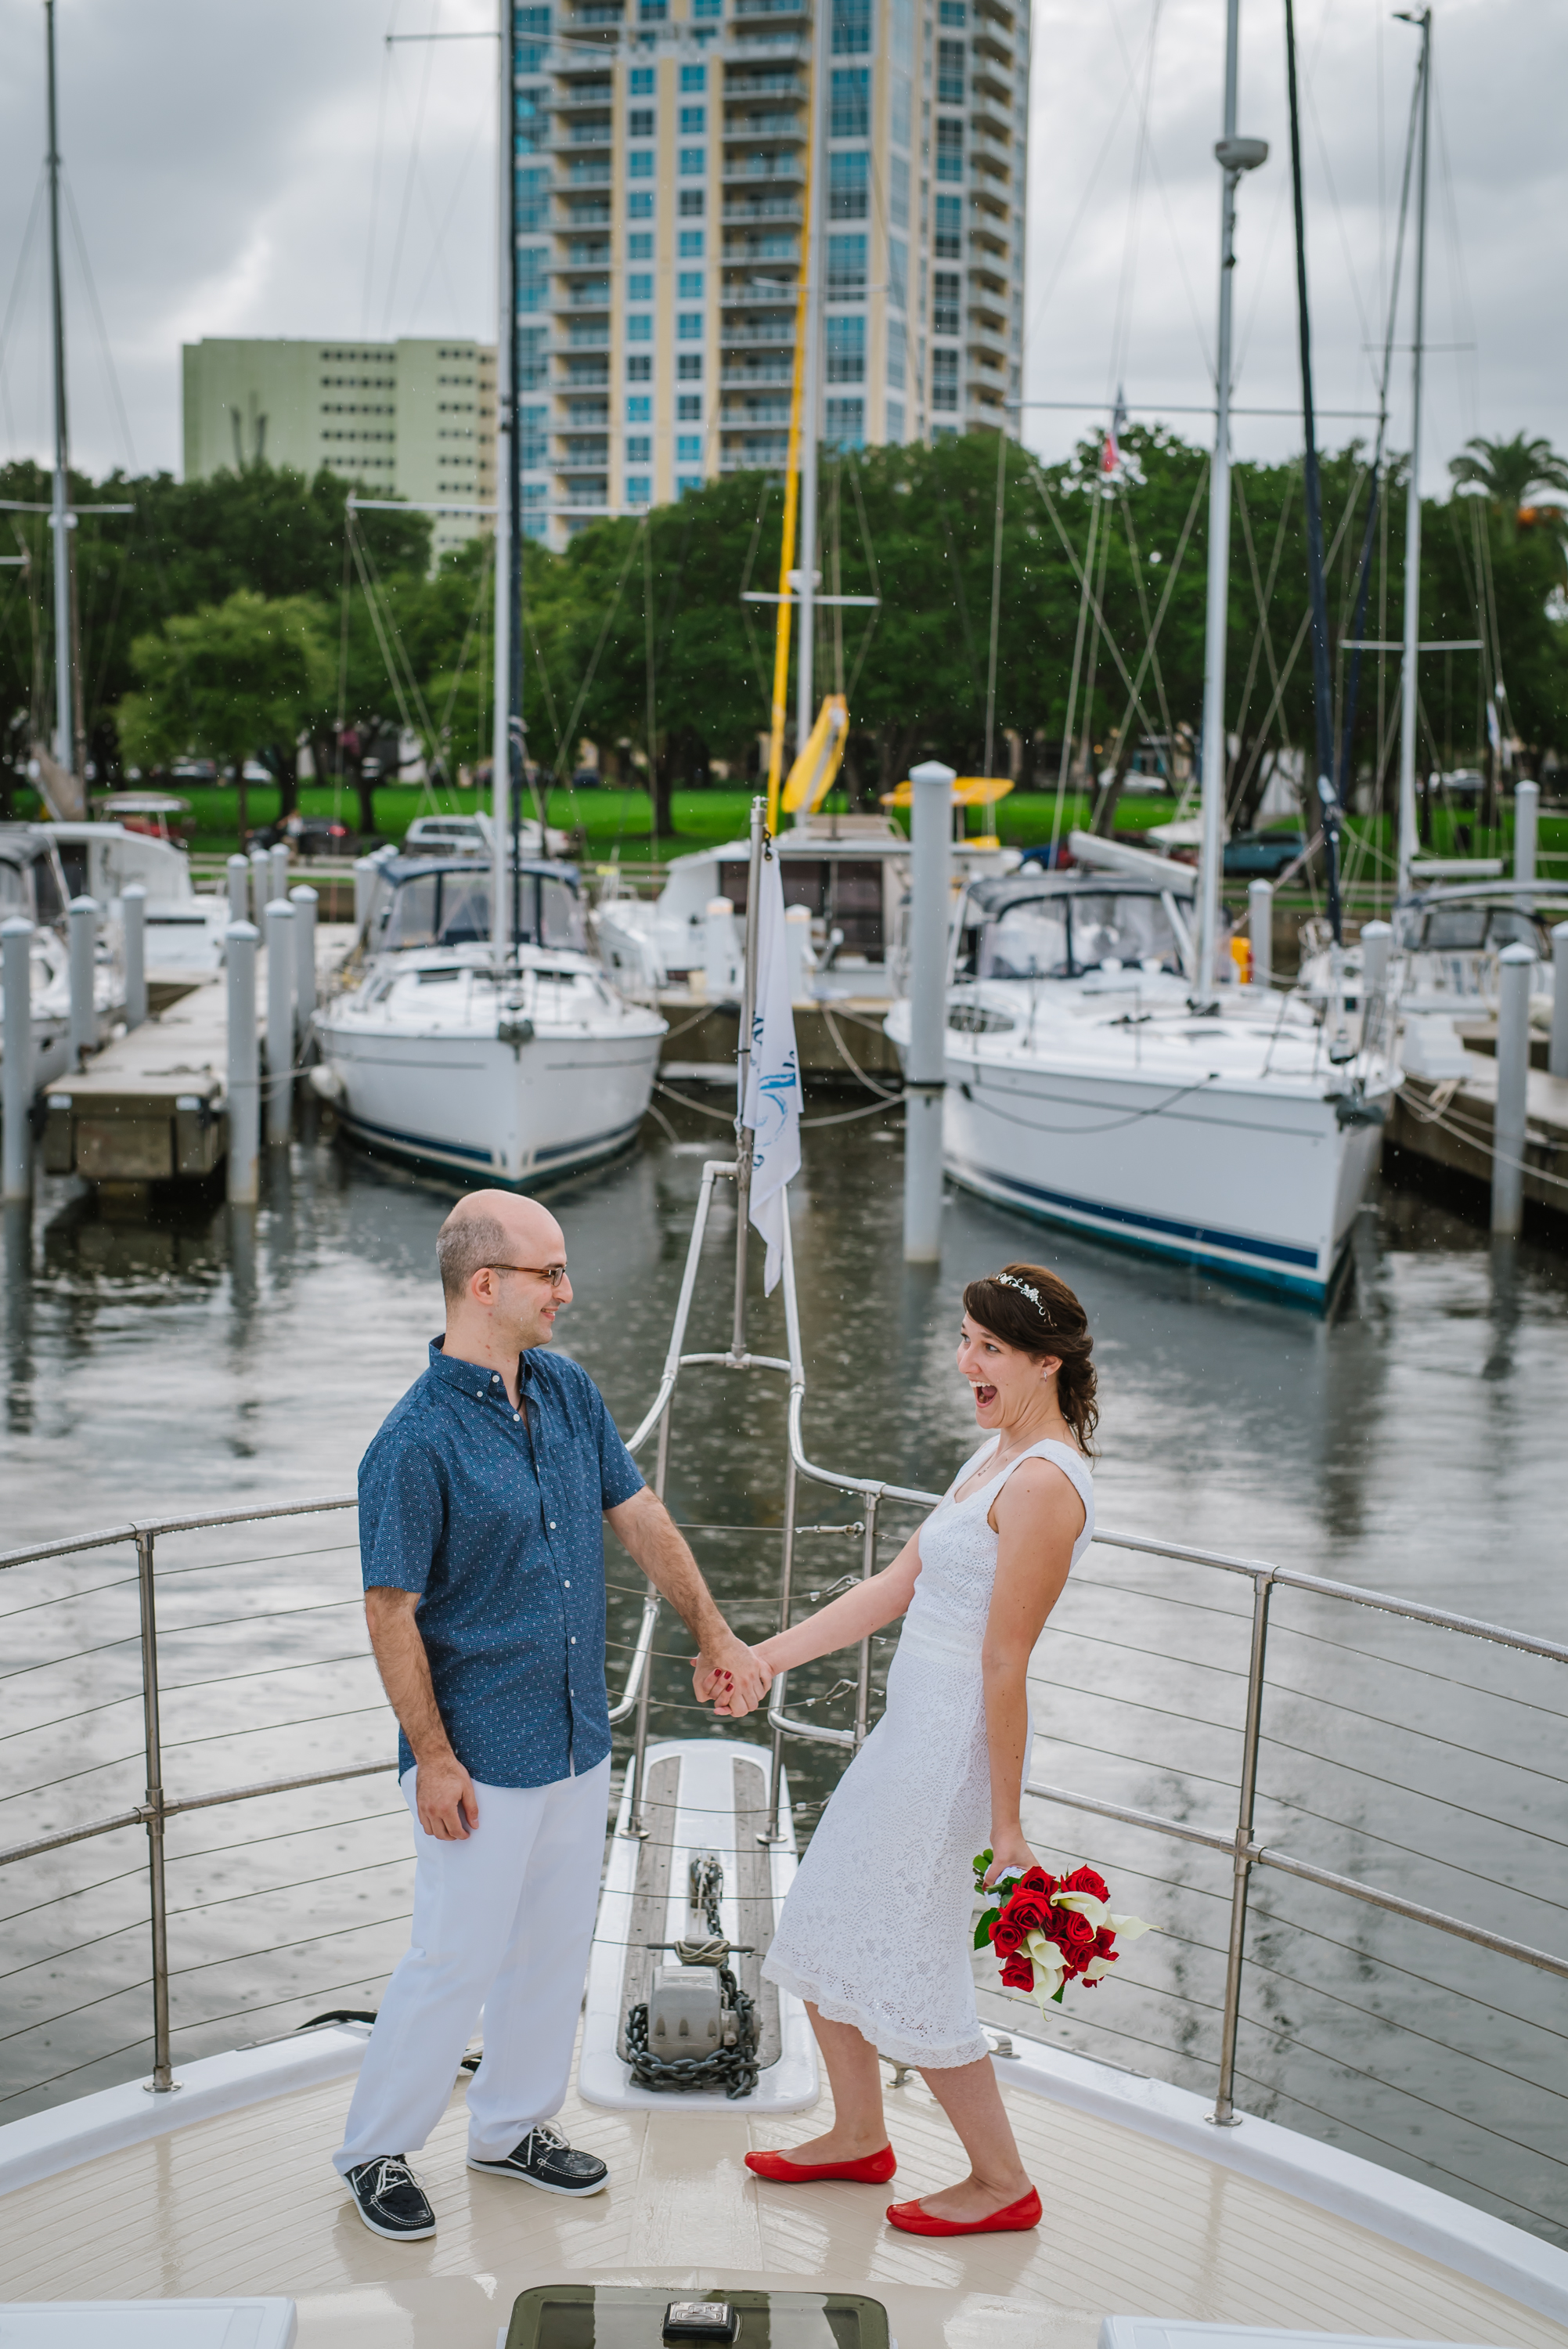 Lisa and Ted are such goofballs! I love how they didn't let a little rain dampen their awesome yacht elopement!